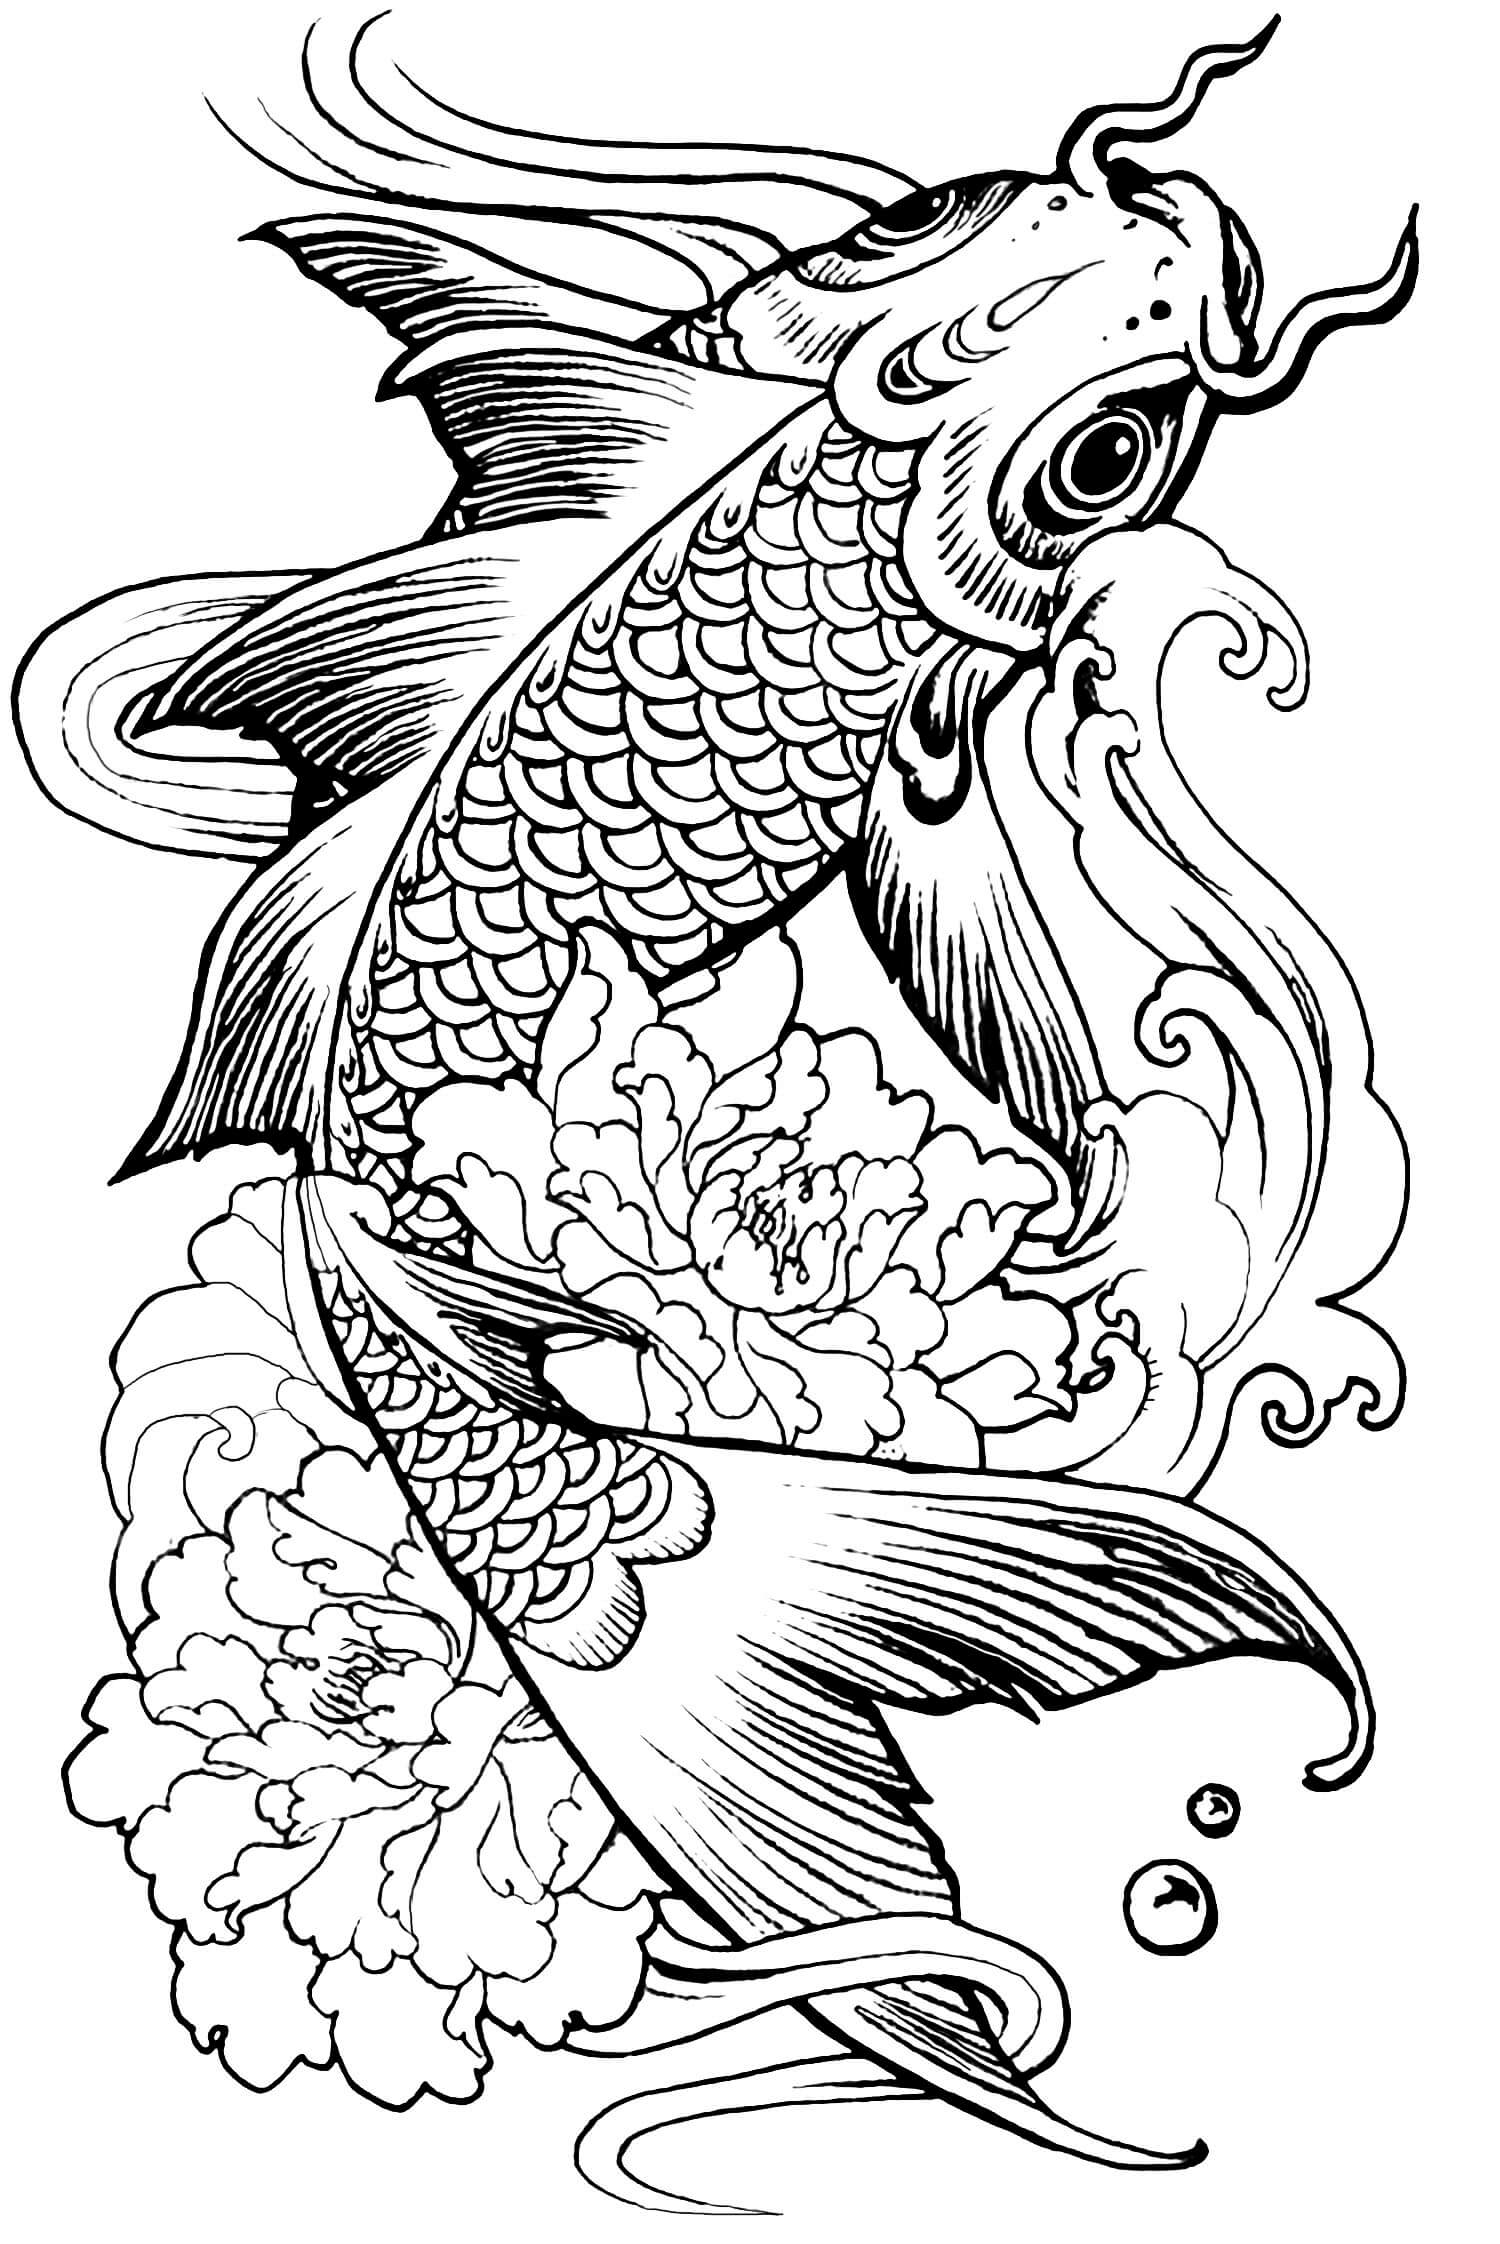 best animal colouring books 6561 ide coloring pages for adults difficult animals 20 animal books colouring best